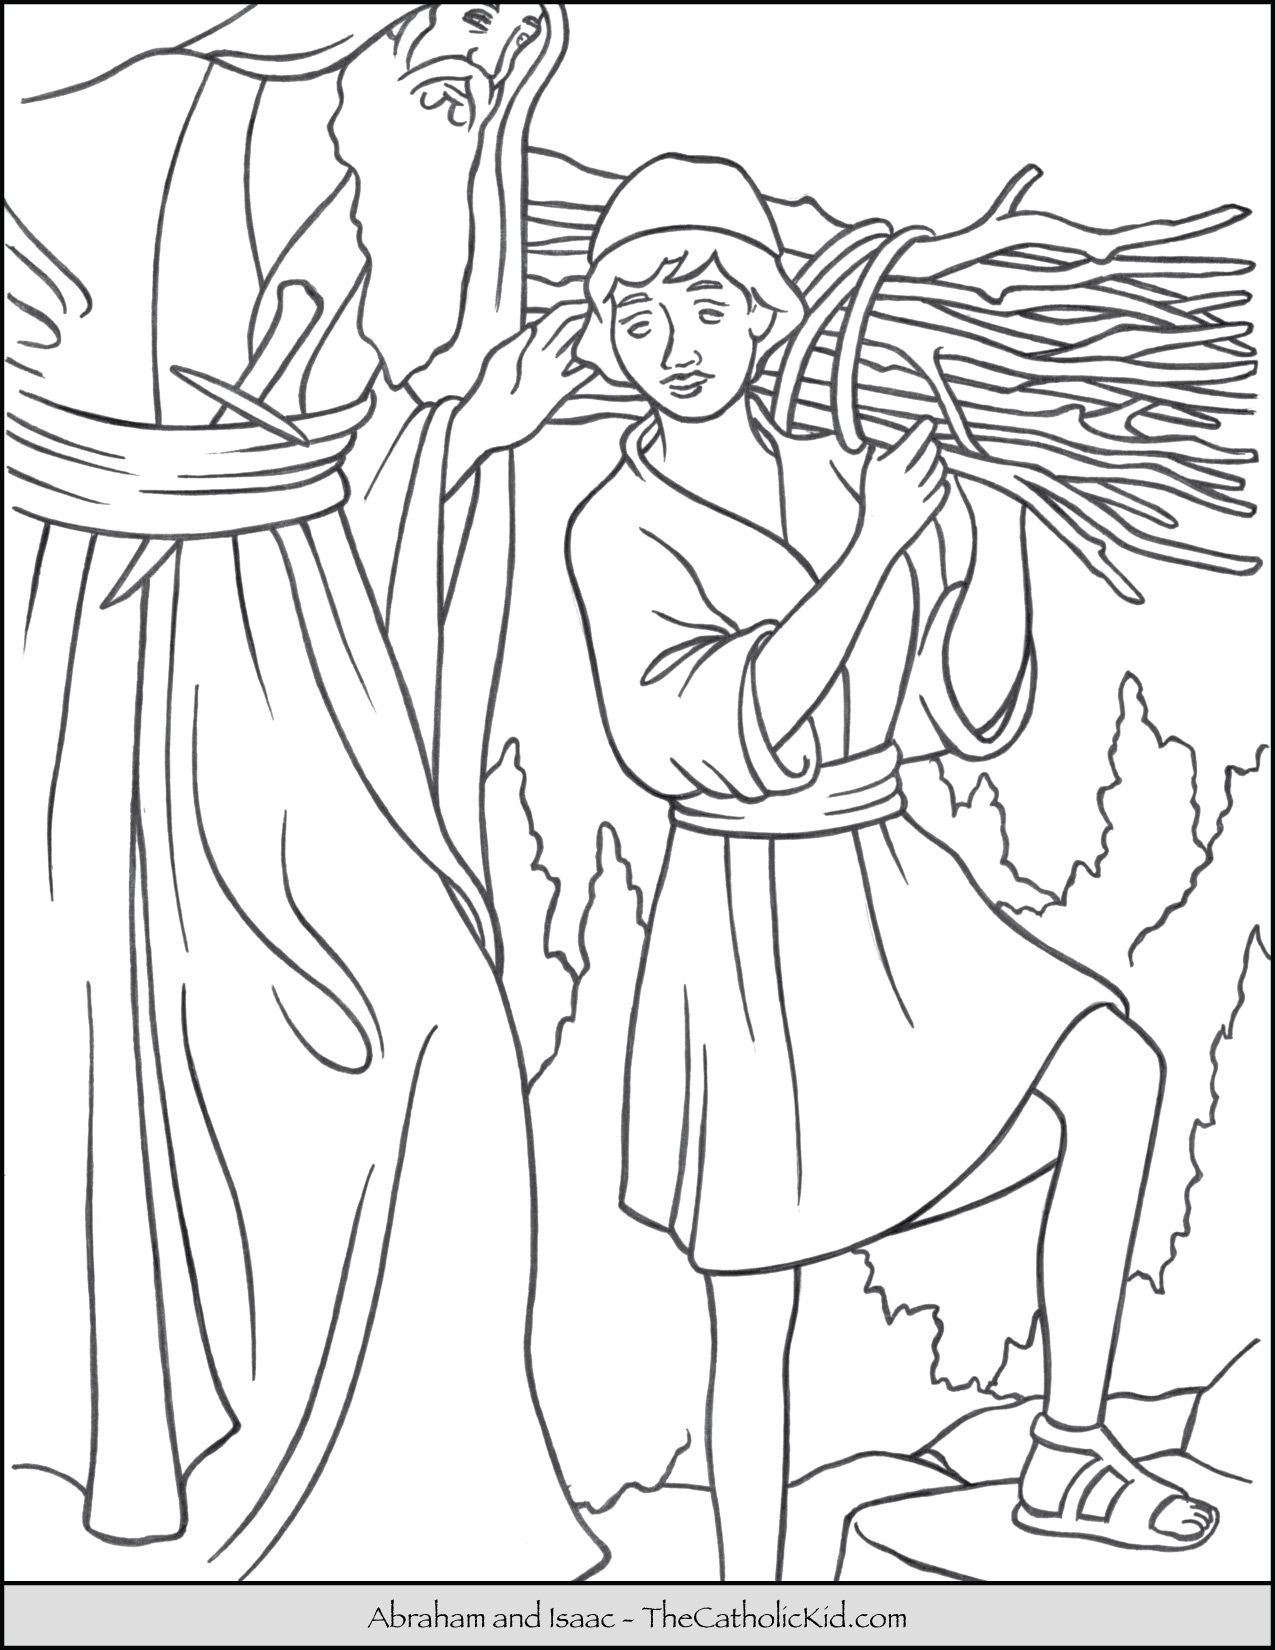 47+ Coloring page of abraham and isaac free download